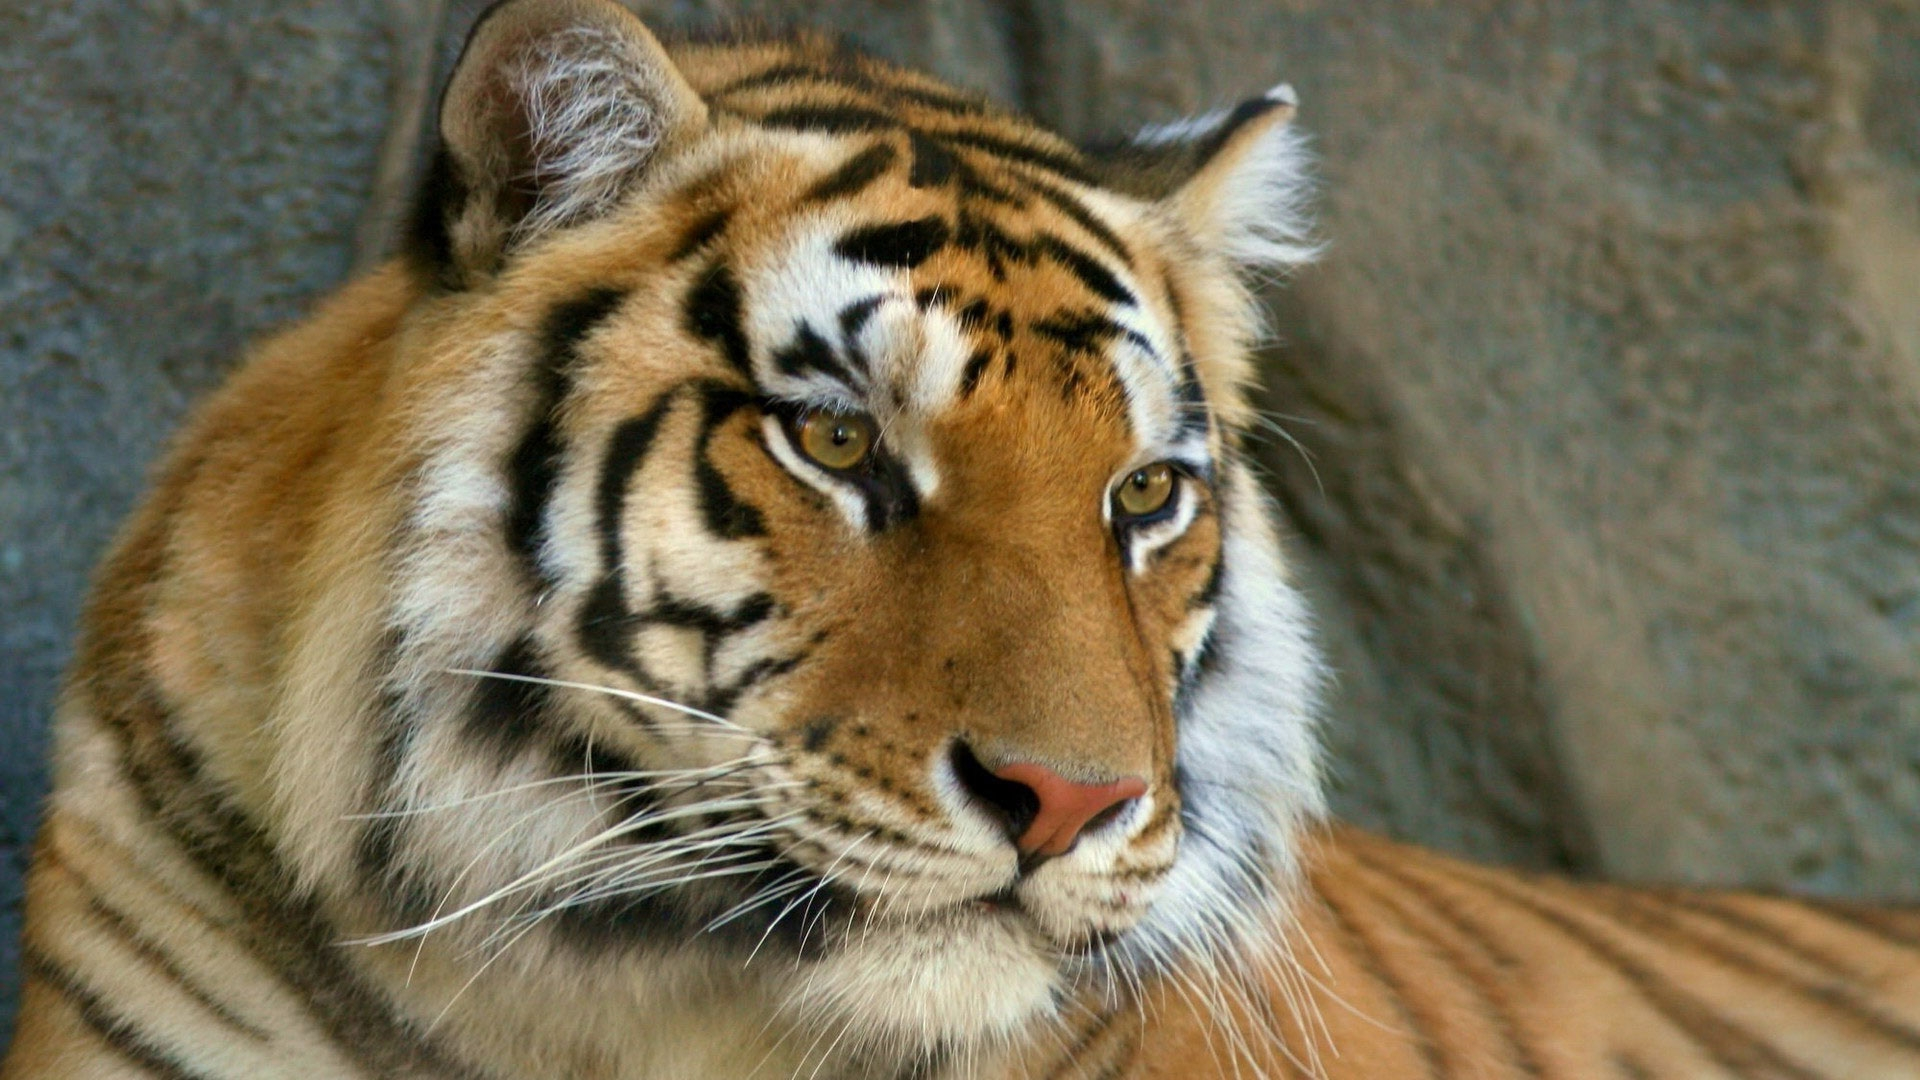 Simple Wallpaper High Resolution Tiger - tiger-hd-wallpapers-1920x1080-9  Photograph_475858.jpg